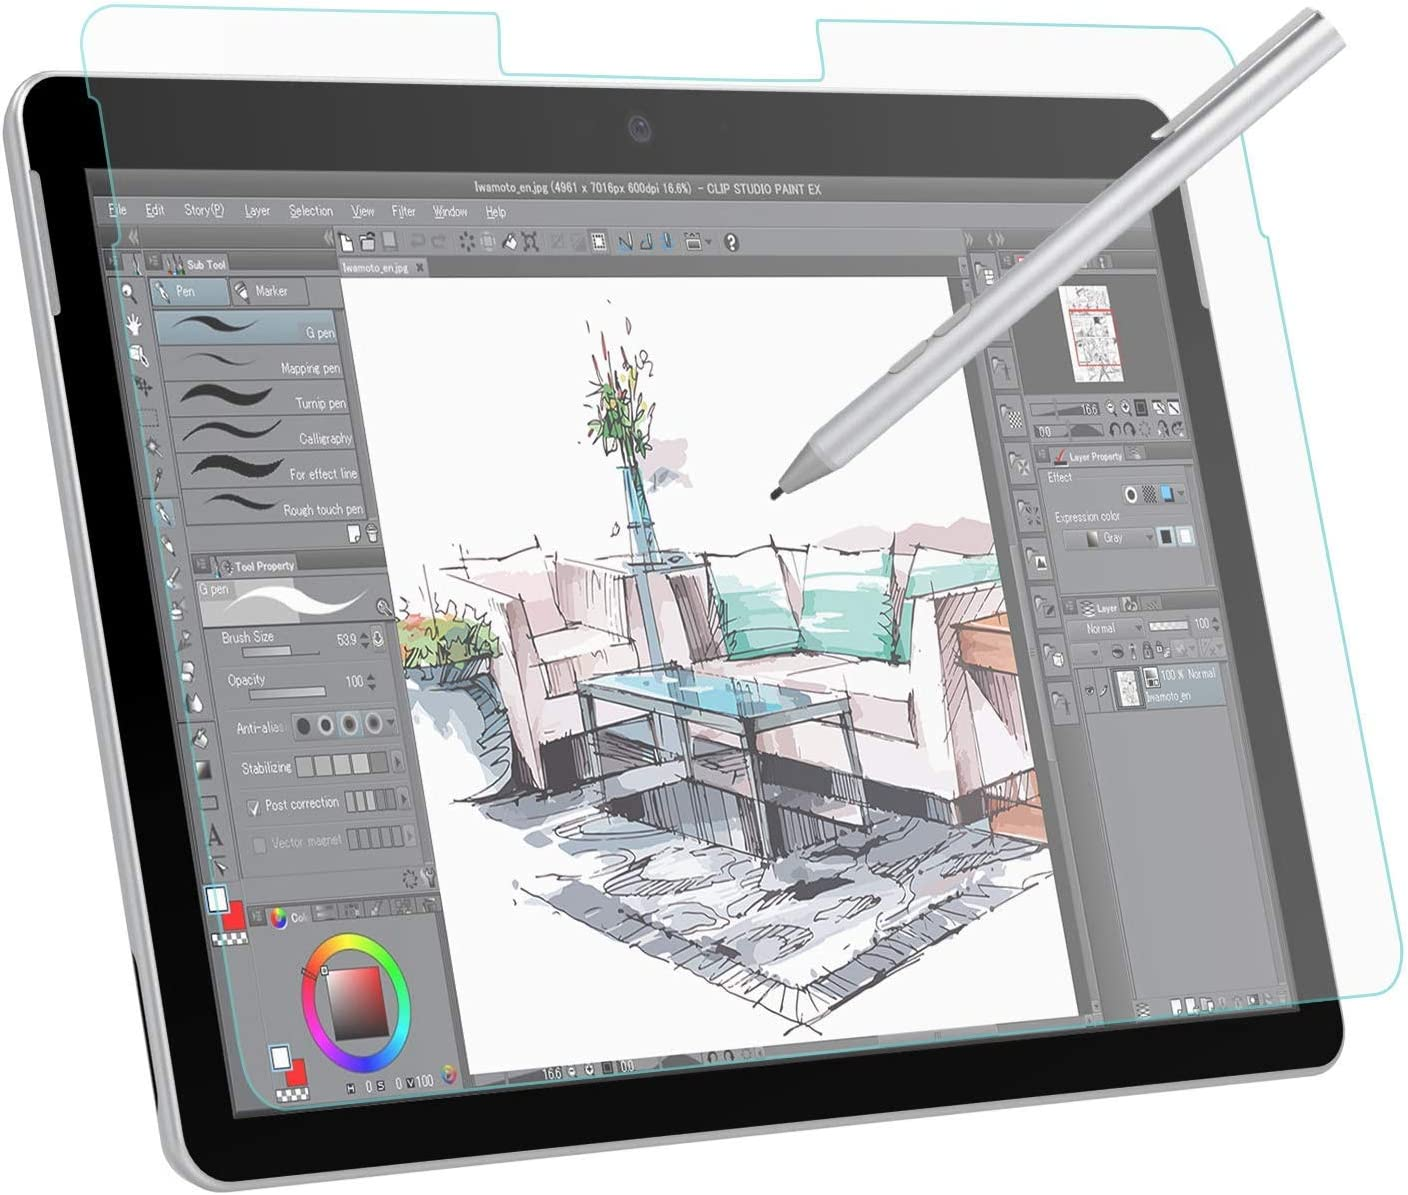 Fulson Paper-Like Screen Protector (Not Glass) for Ipad Pro 2018